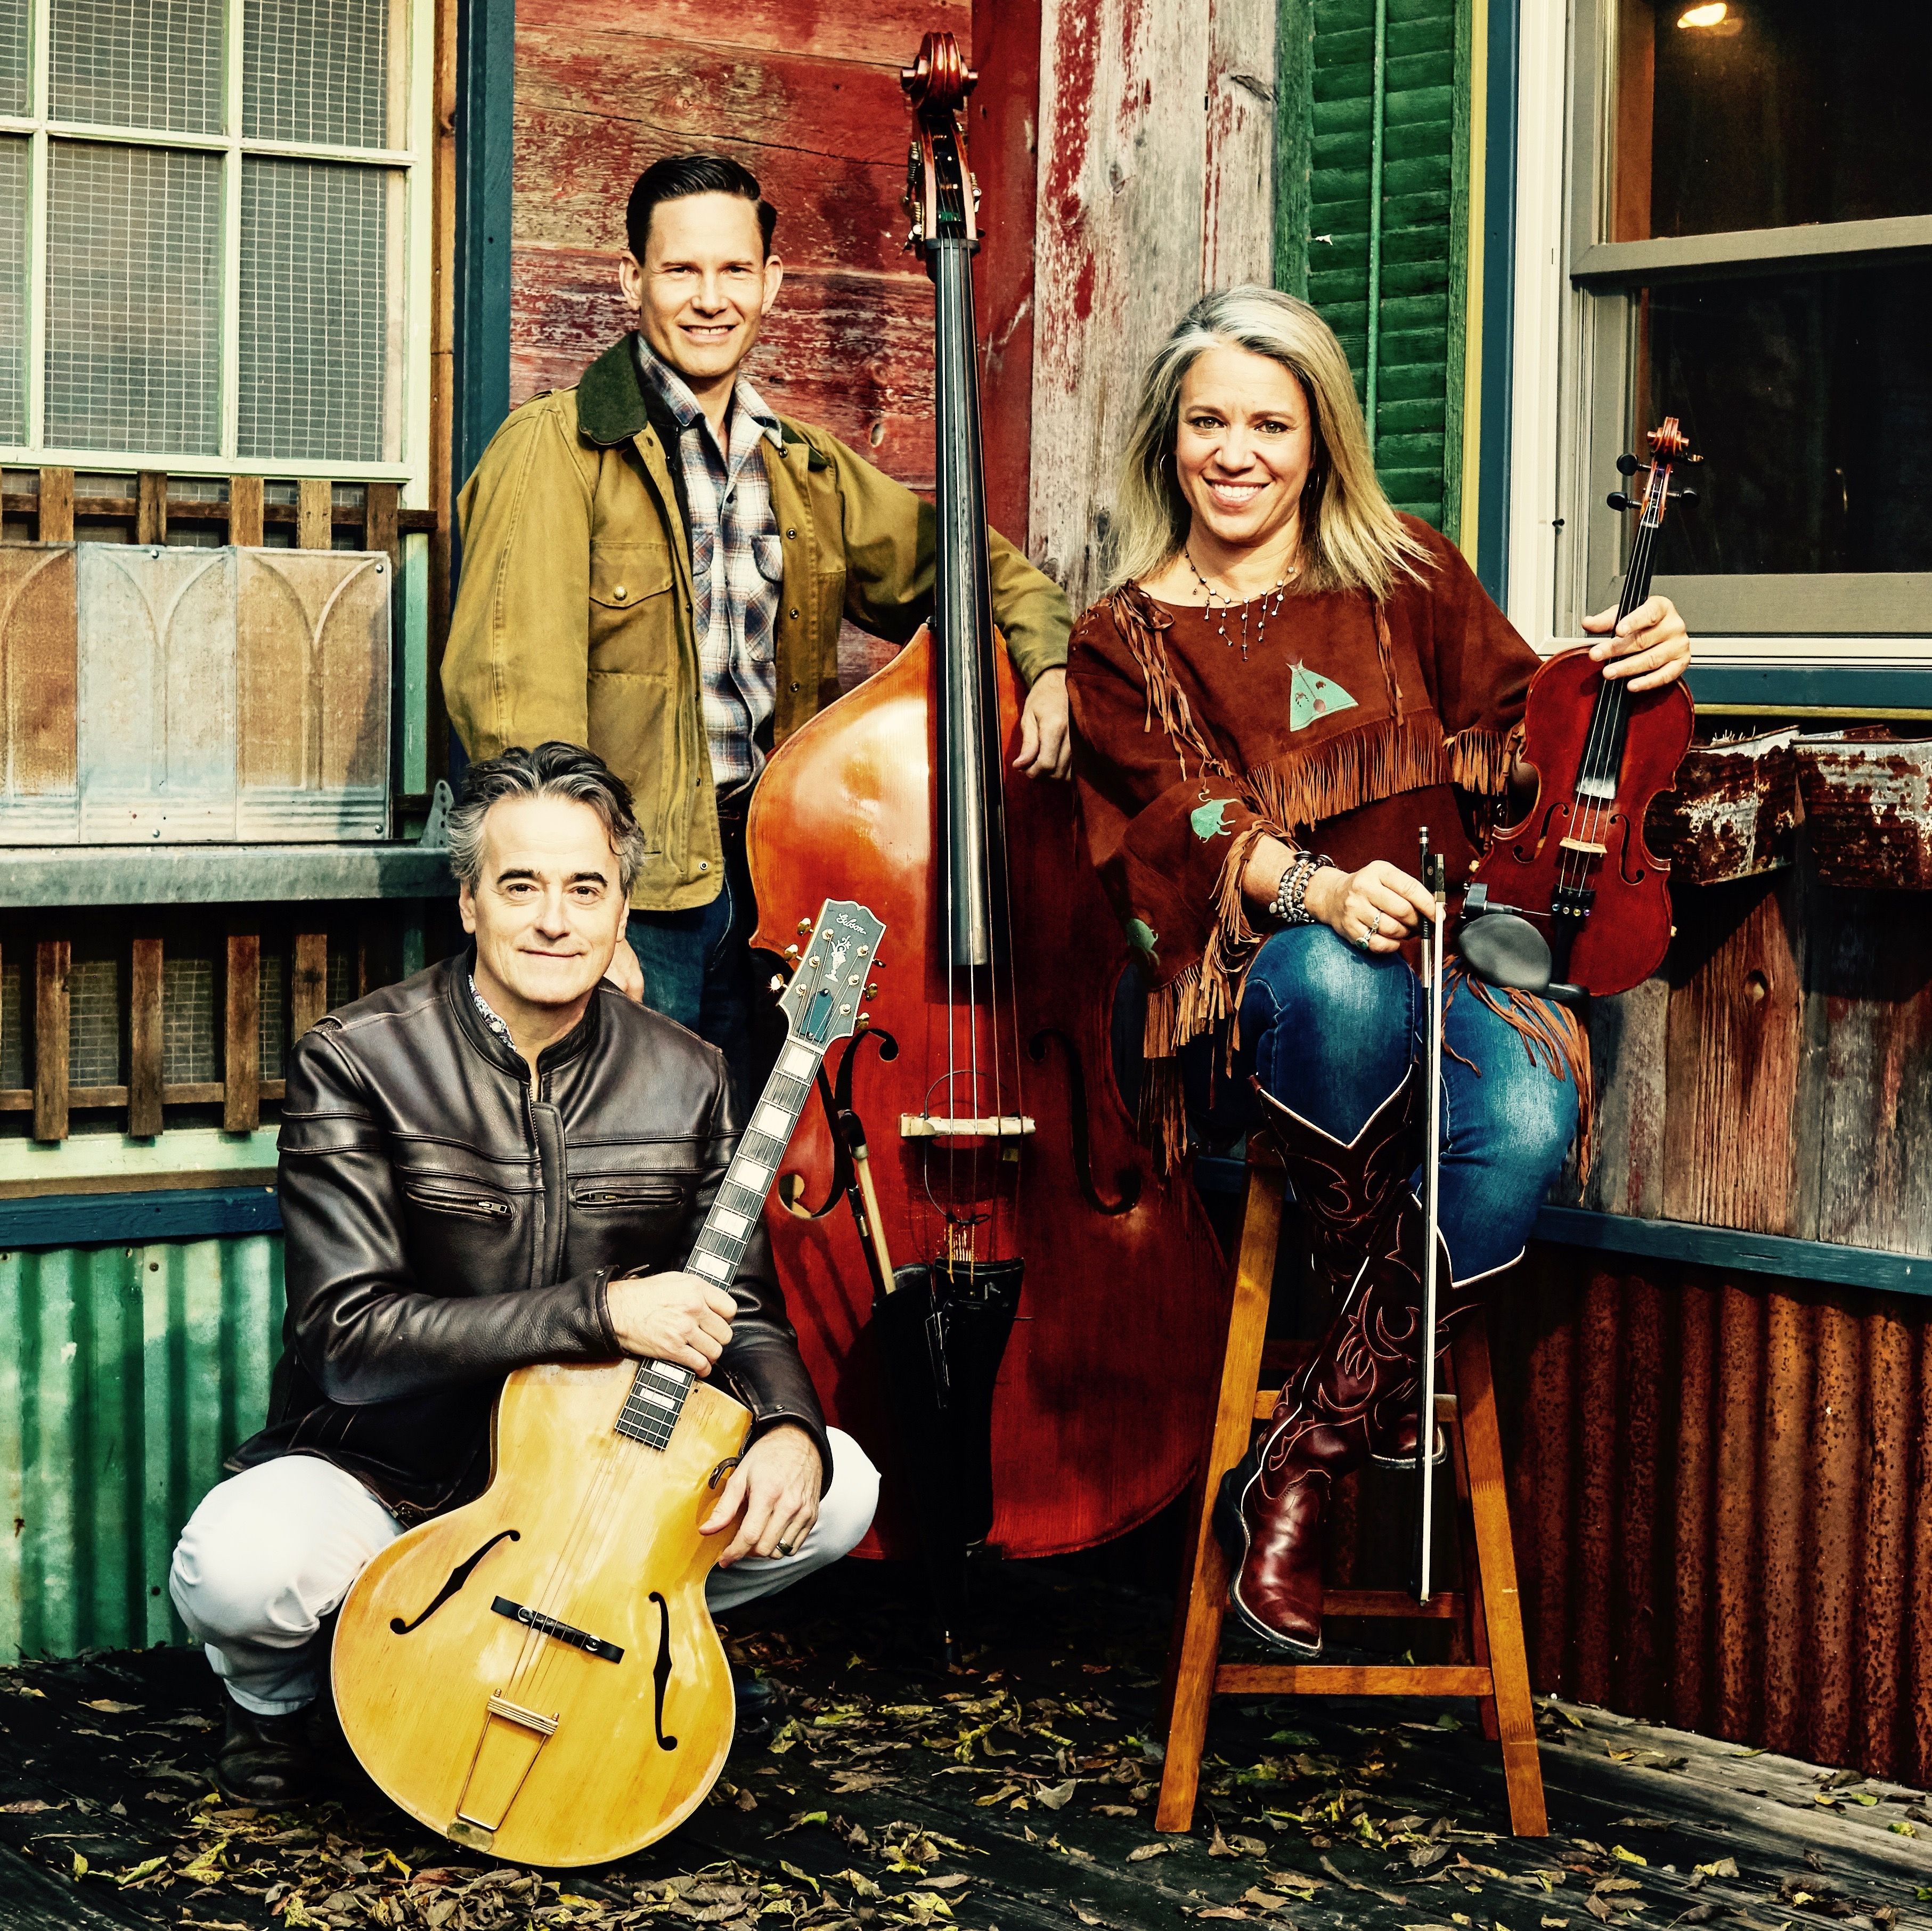 Hot Club of Cowtown playing Armadillo Christmas Bazaar at noon December 15th